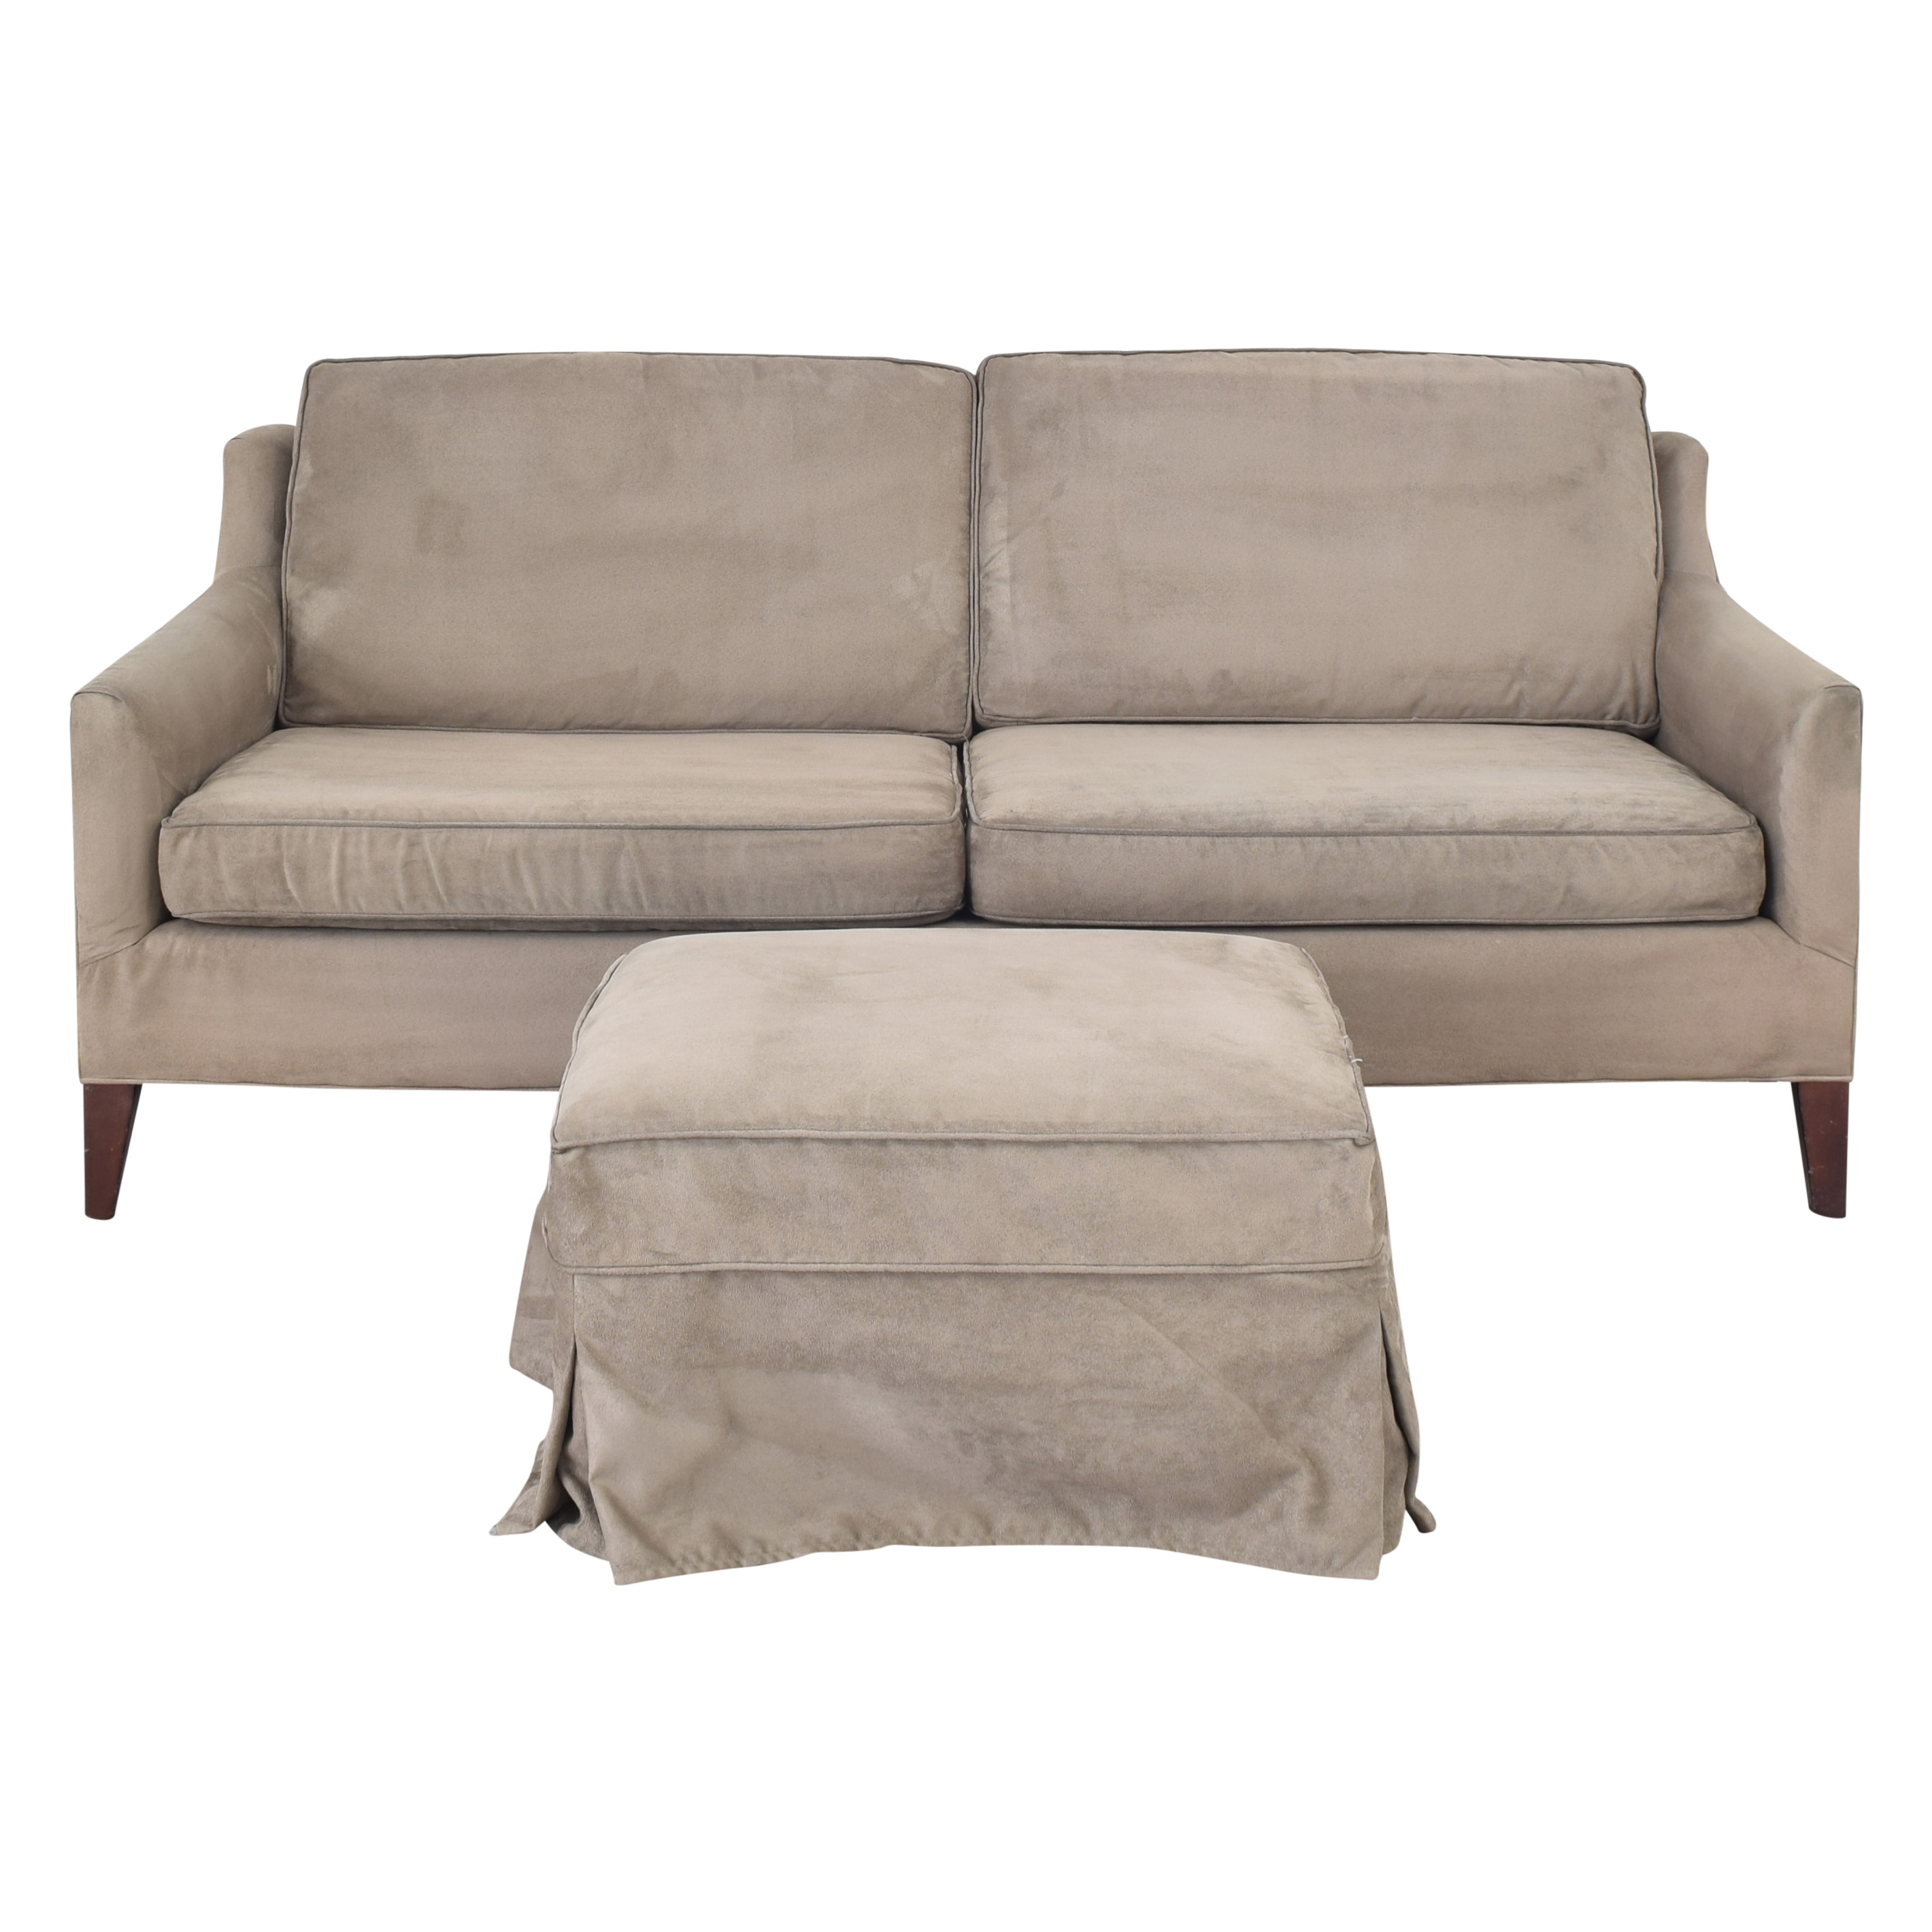 Mitchell Gold + Bob Williams Taylor Apartment Sofa with Ottoman / Classic Sofas